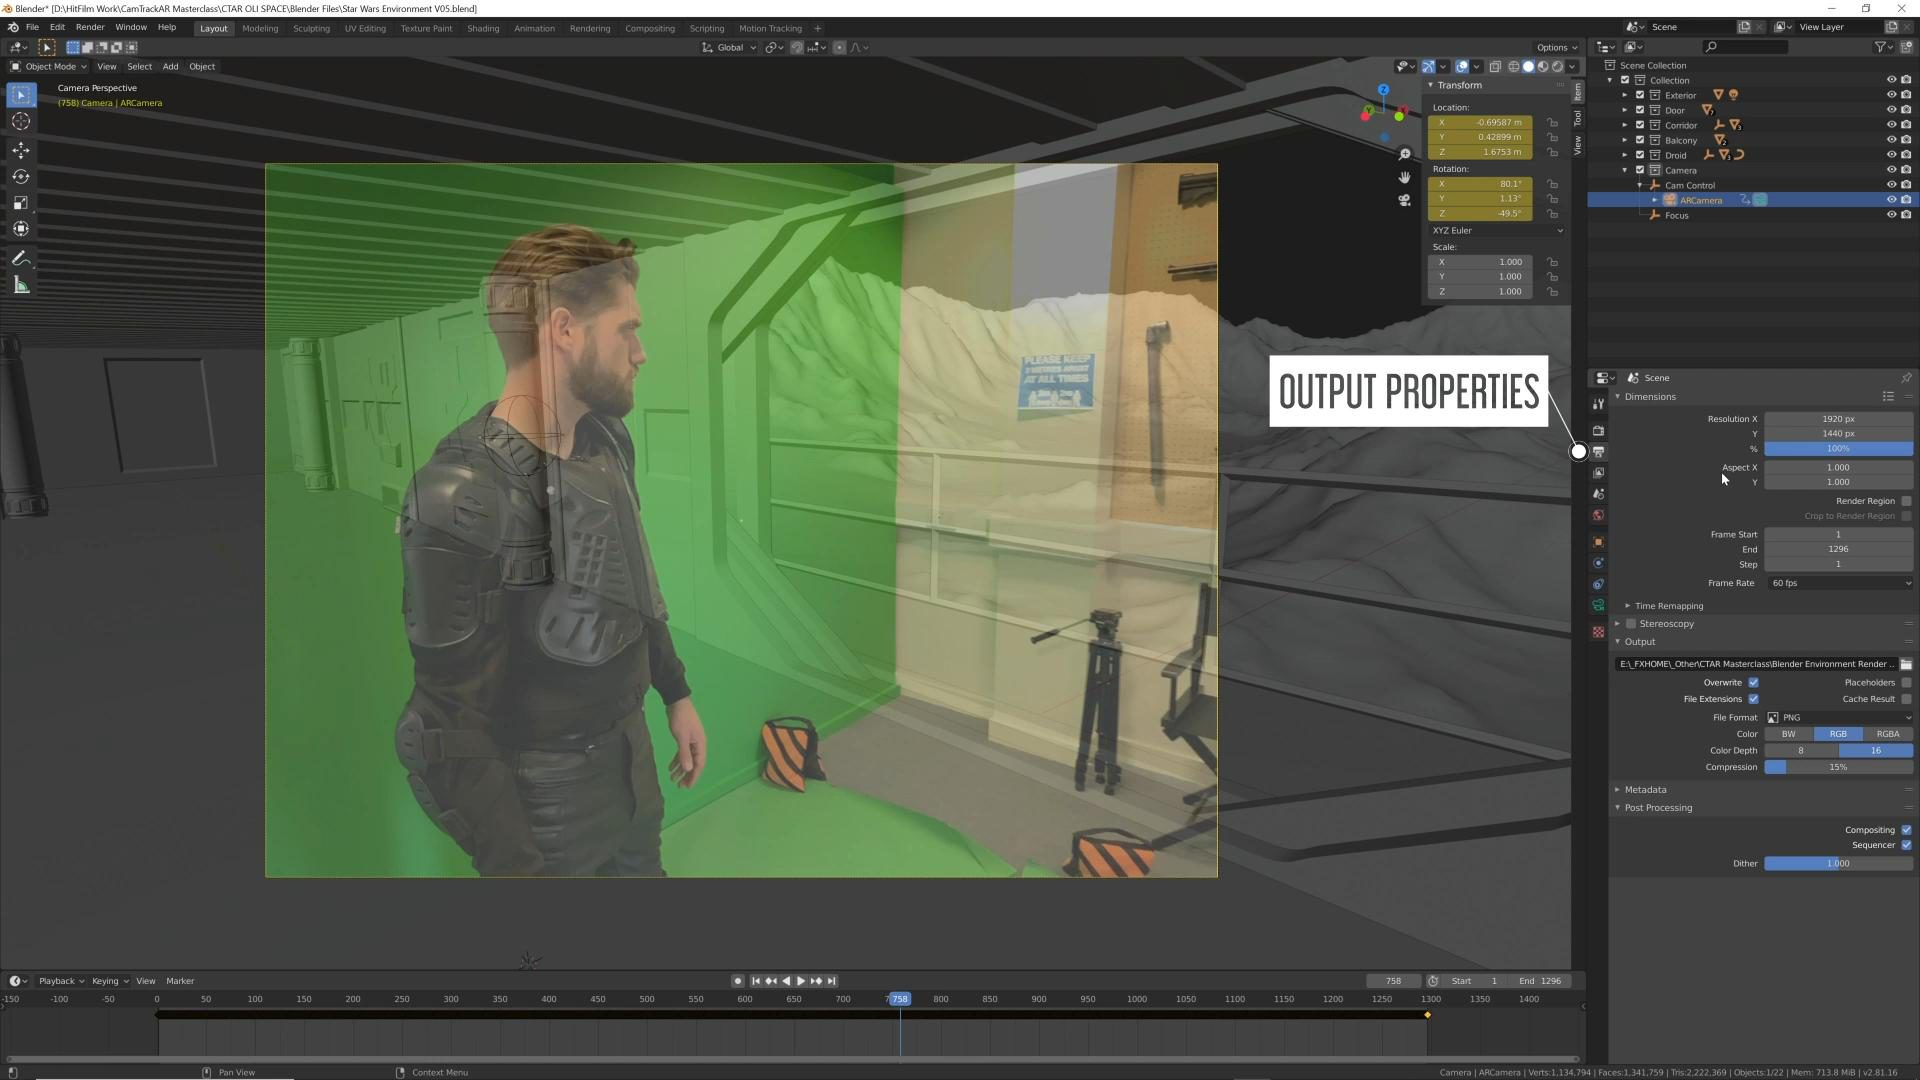 How to use CamTrackAR with Unreal Engine, Blender, and After Effects - Viewing footage in Blender